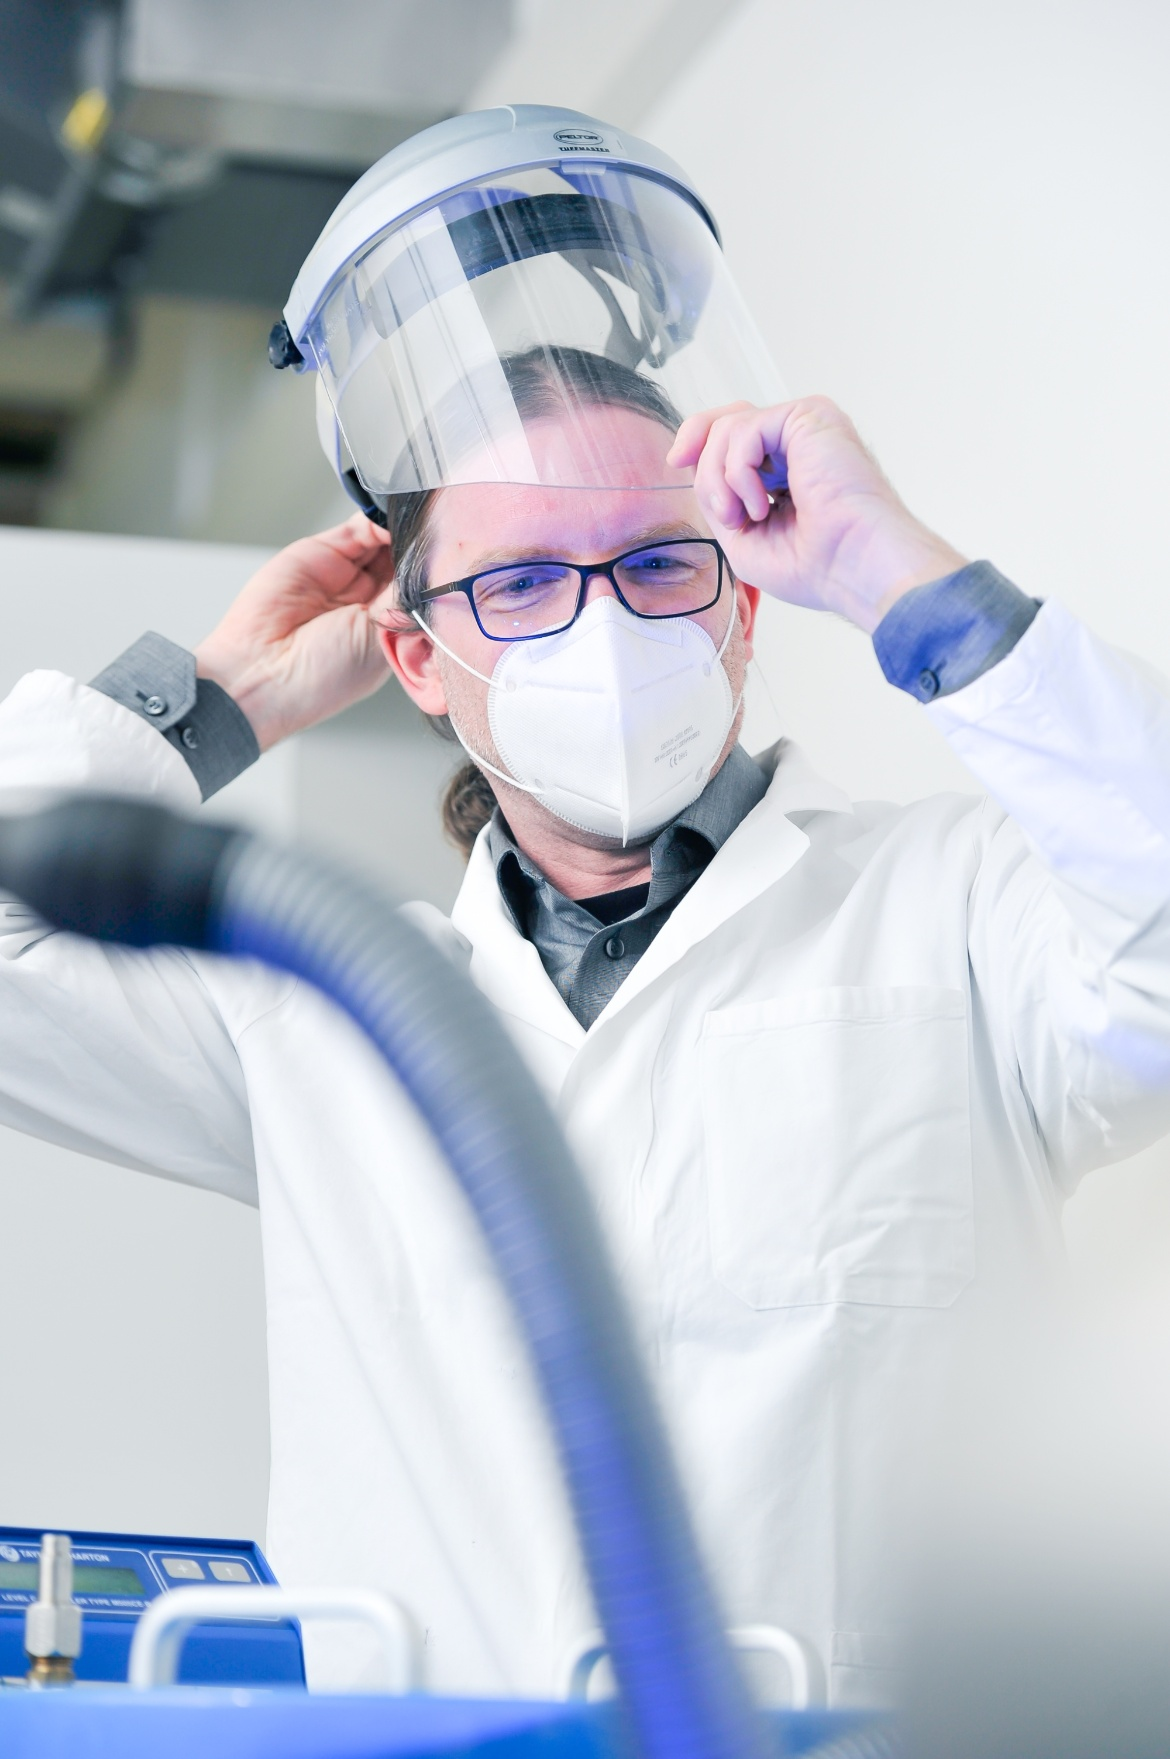 Prof. Markus Morrison puts on a face shield in the lab.